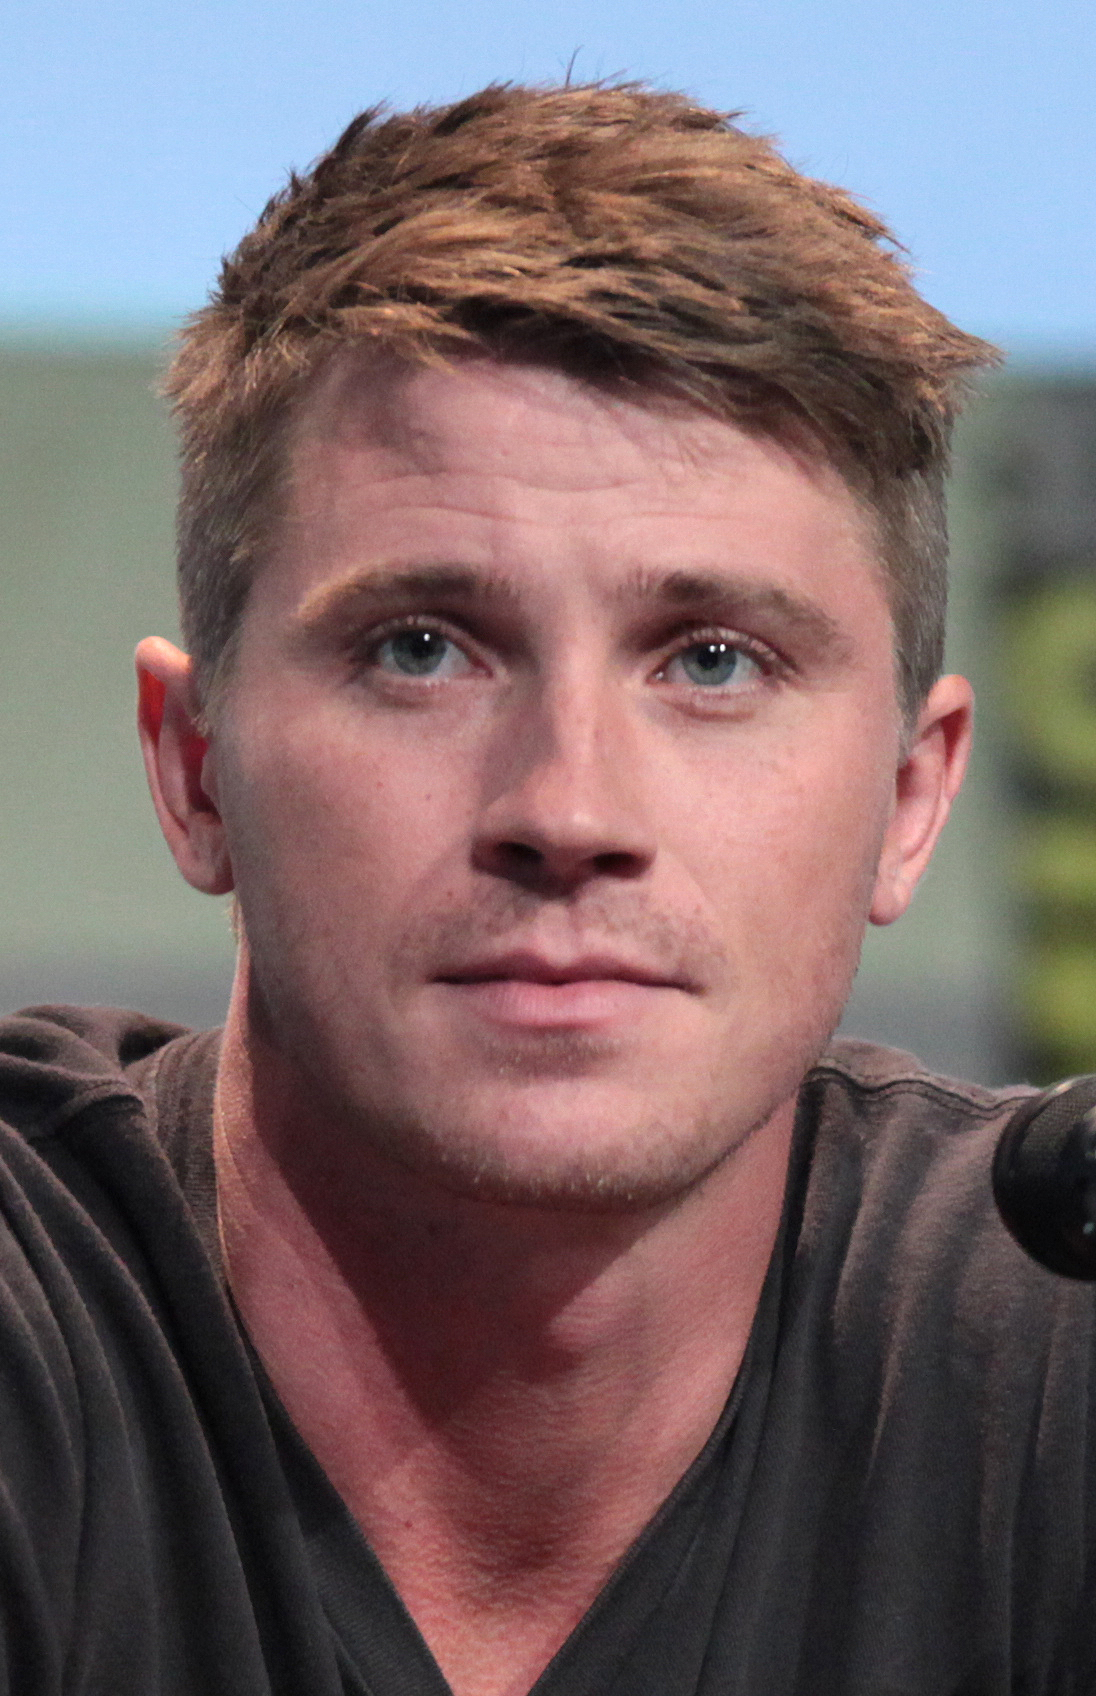 The 33-year old son of father Robert Martin Hedlund and mother Kristine Anne  Garrett Hedlund in 2018 photo. Garrett Hedlund earned a  million dollar salary - leaving the net worth at 6 million in 2018